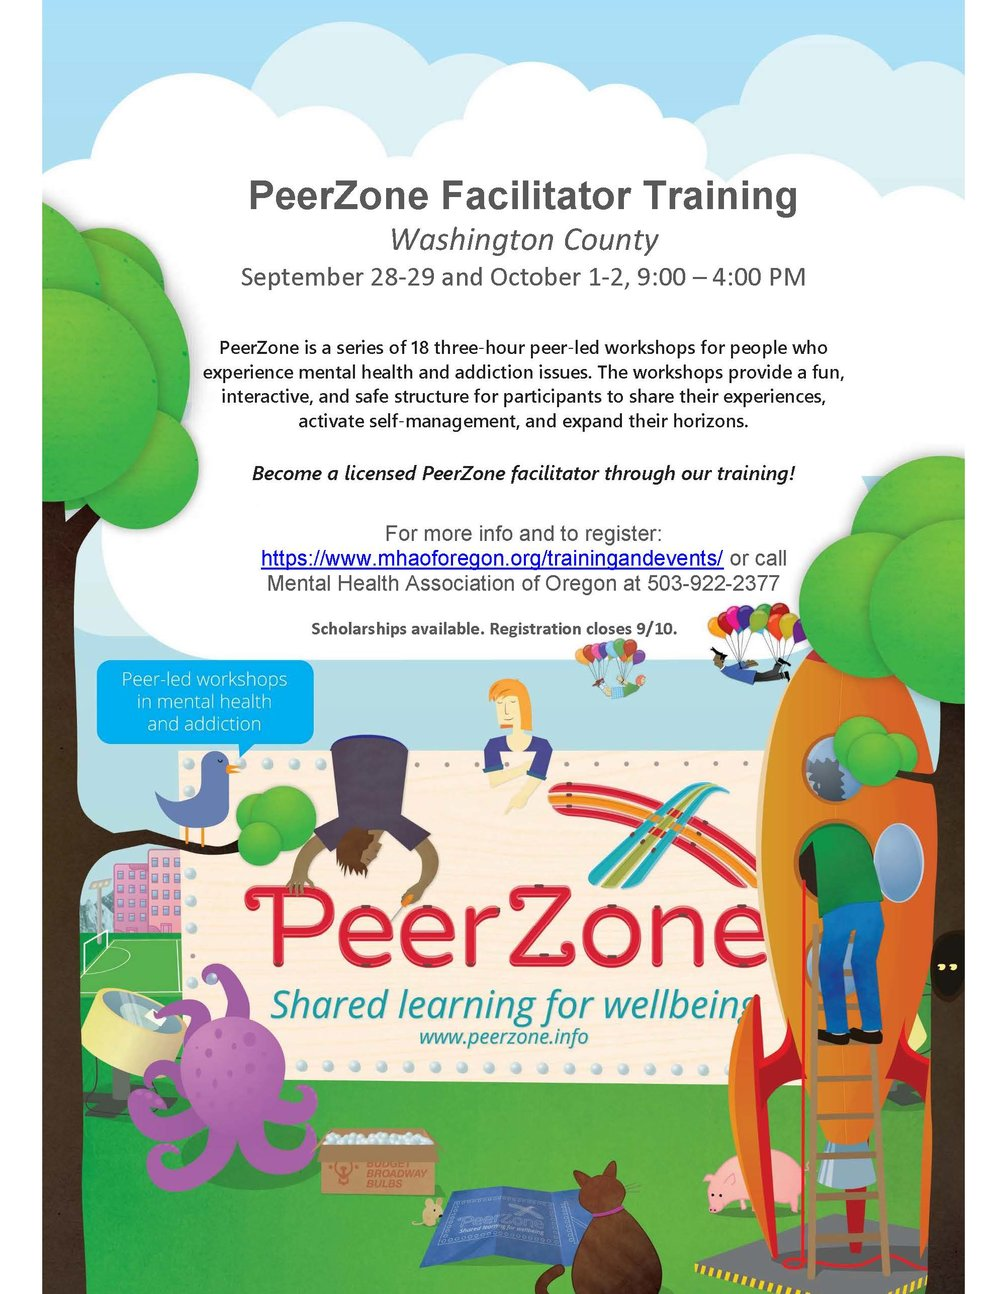 PeerZone Facilitator Training Washington County Sept 2018.jpg